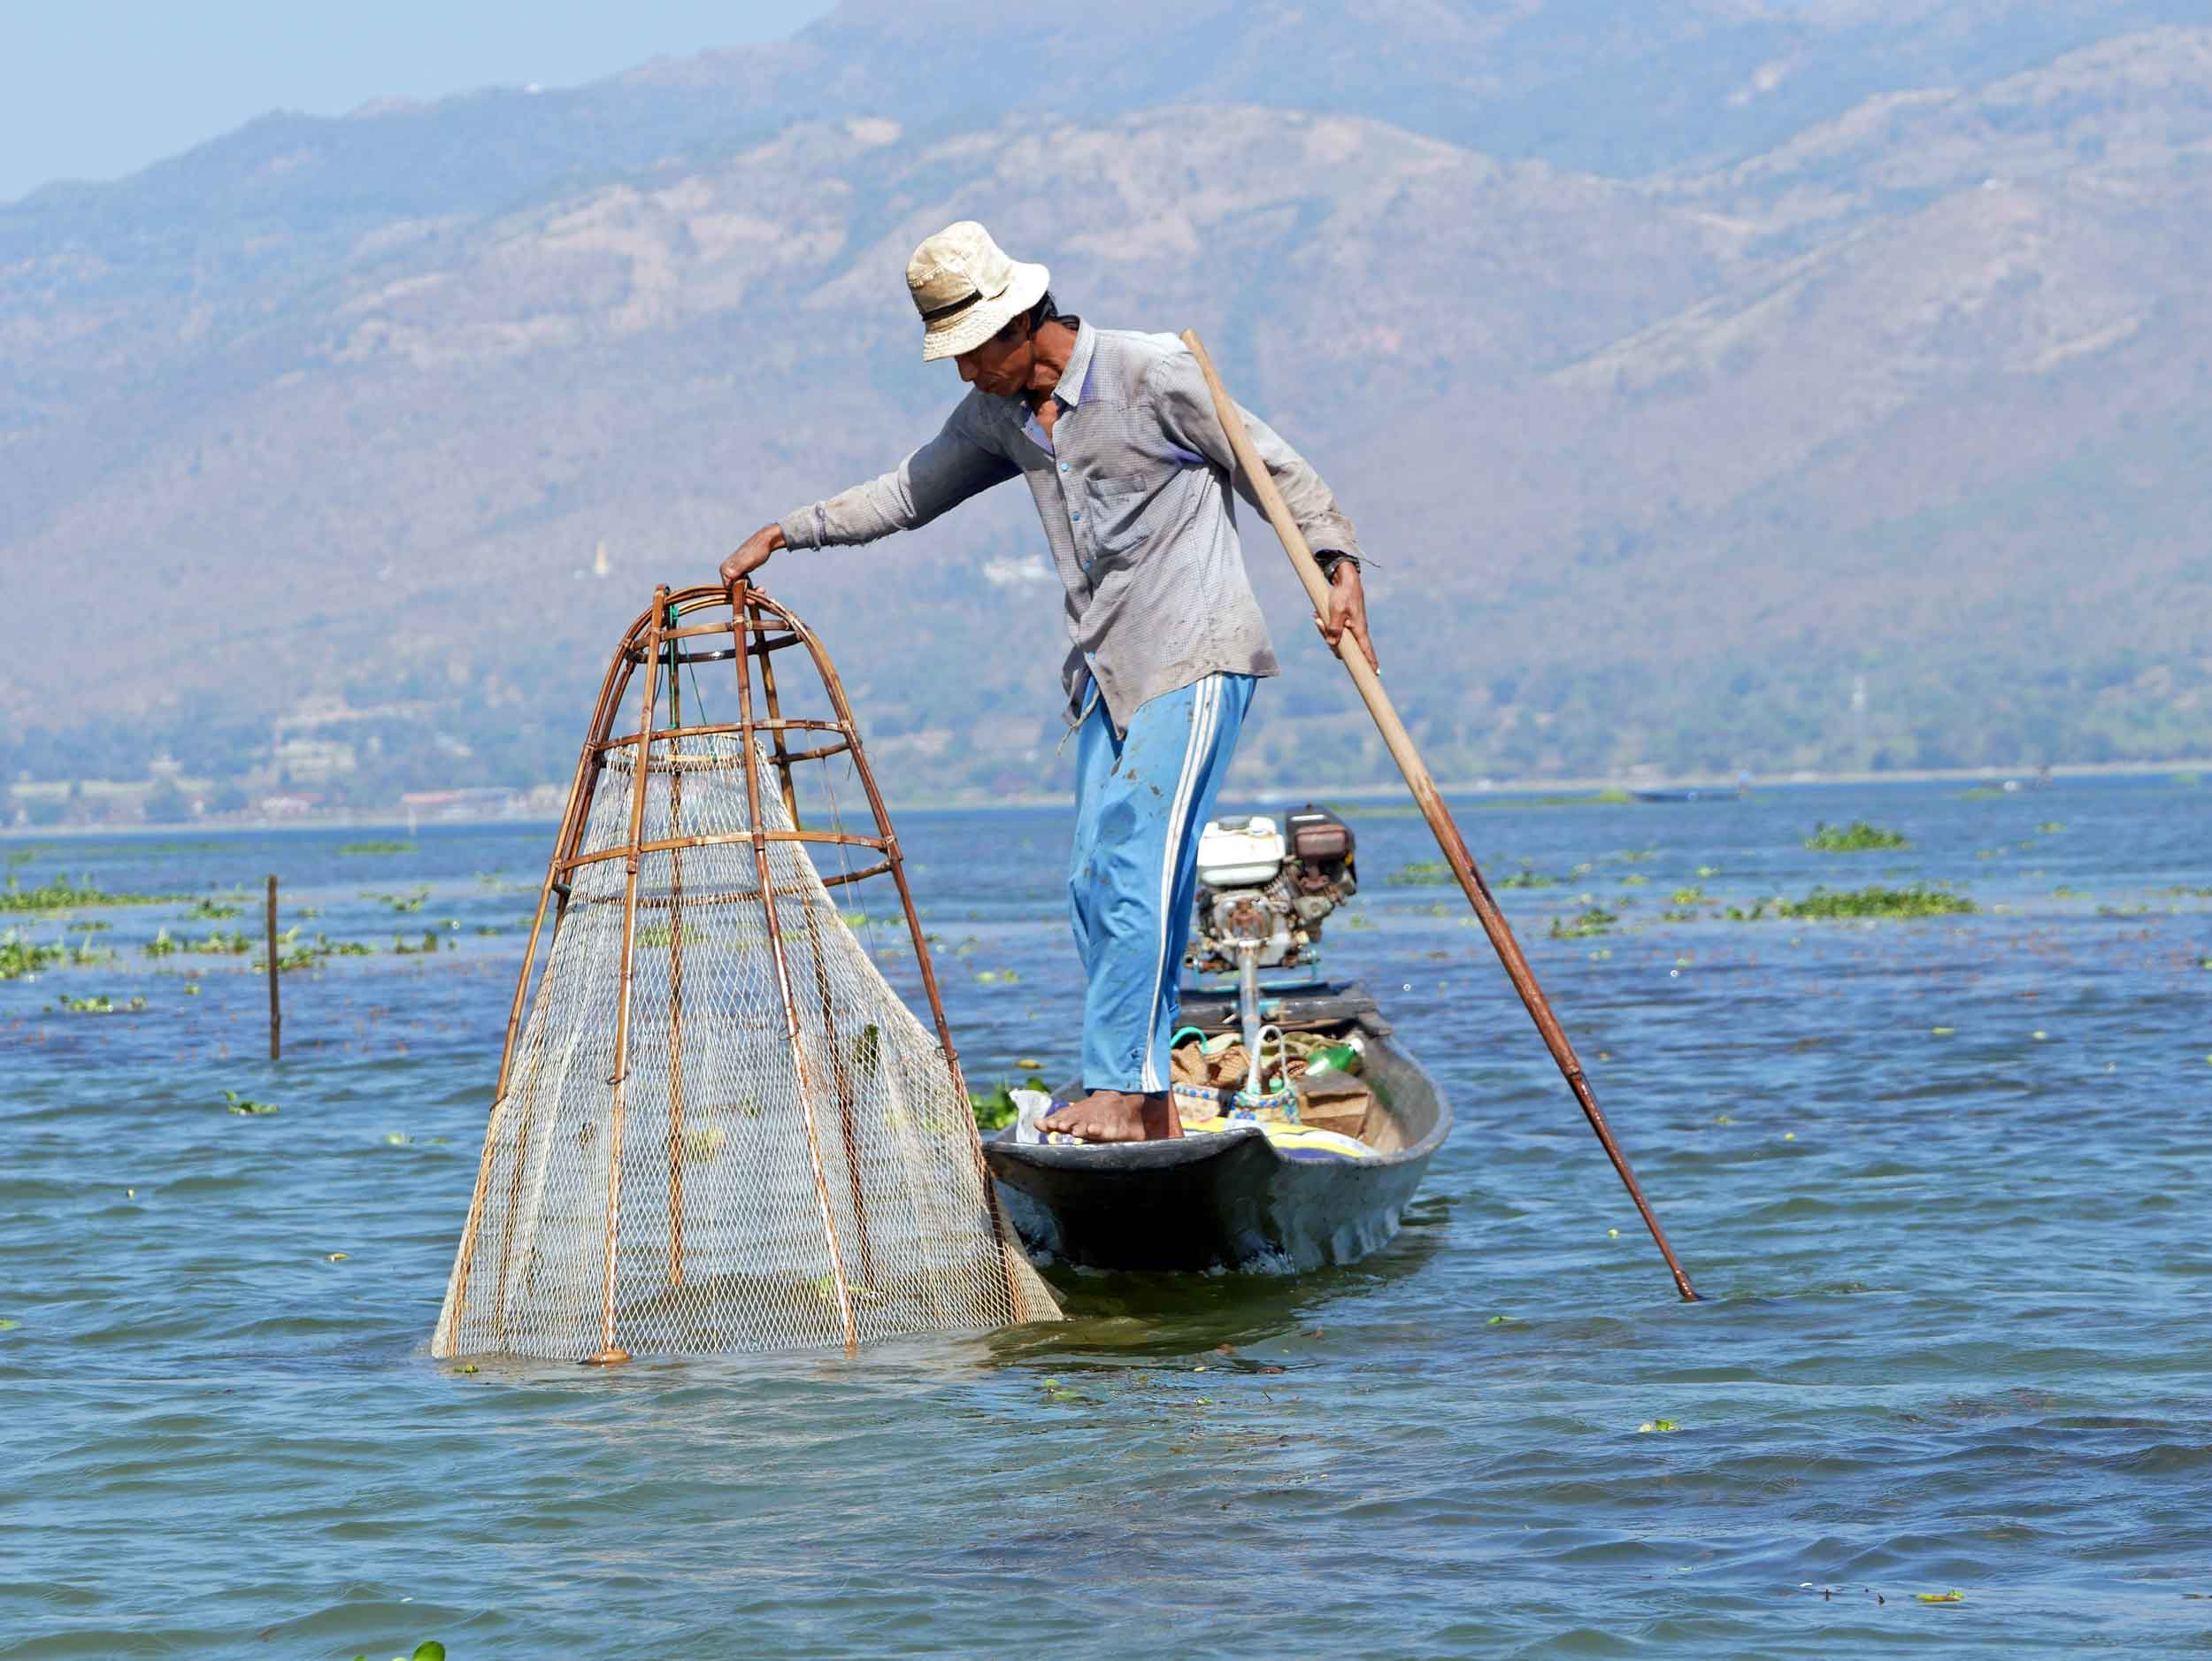 Bursting with life, Inle boasts several endemic species, providing opportunity for local fishermen (Feb 21).